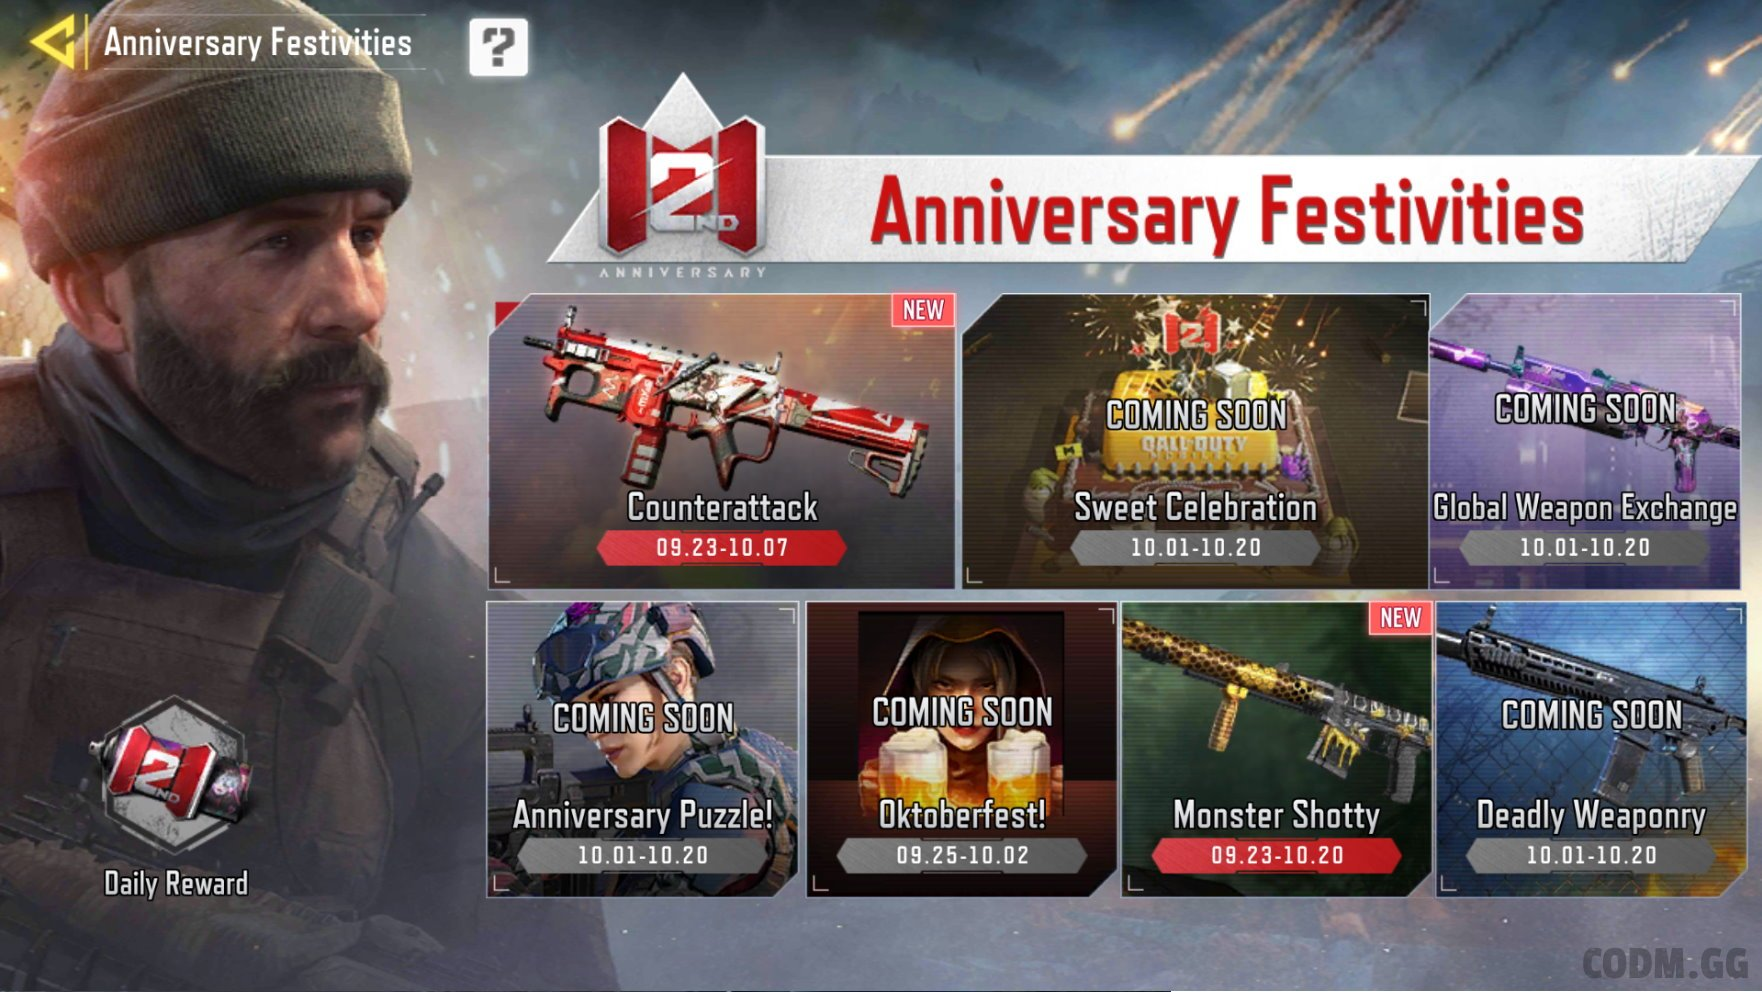 Season 8/21 and 2nd Anniversary Celebrations NOW LIVE!